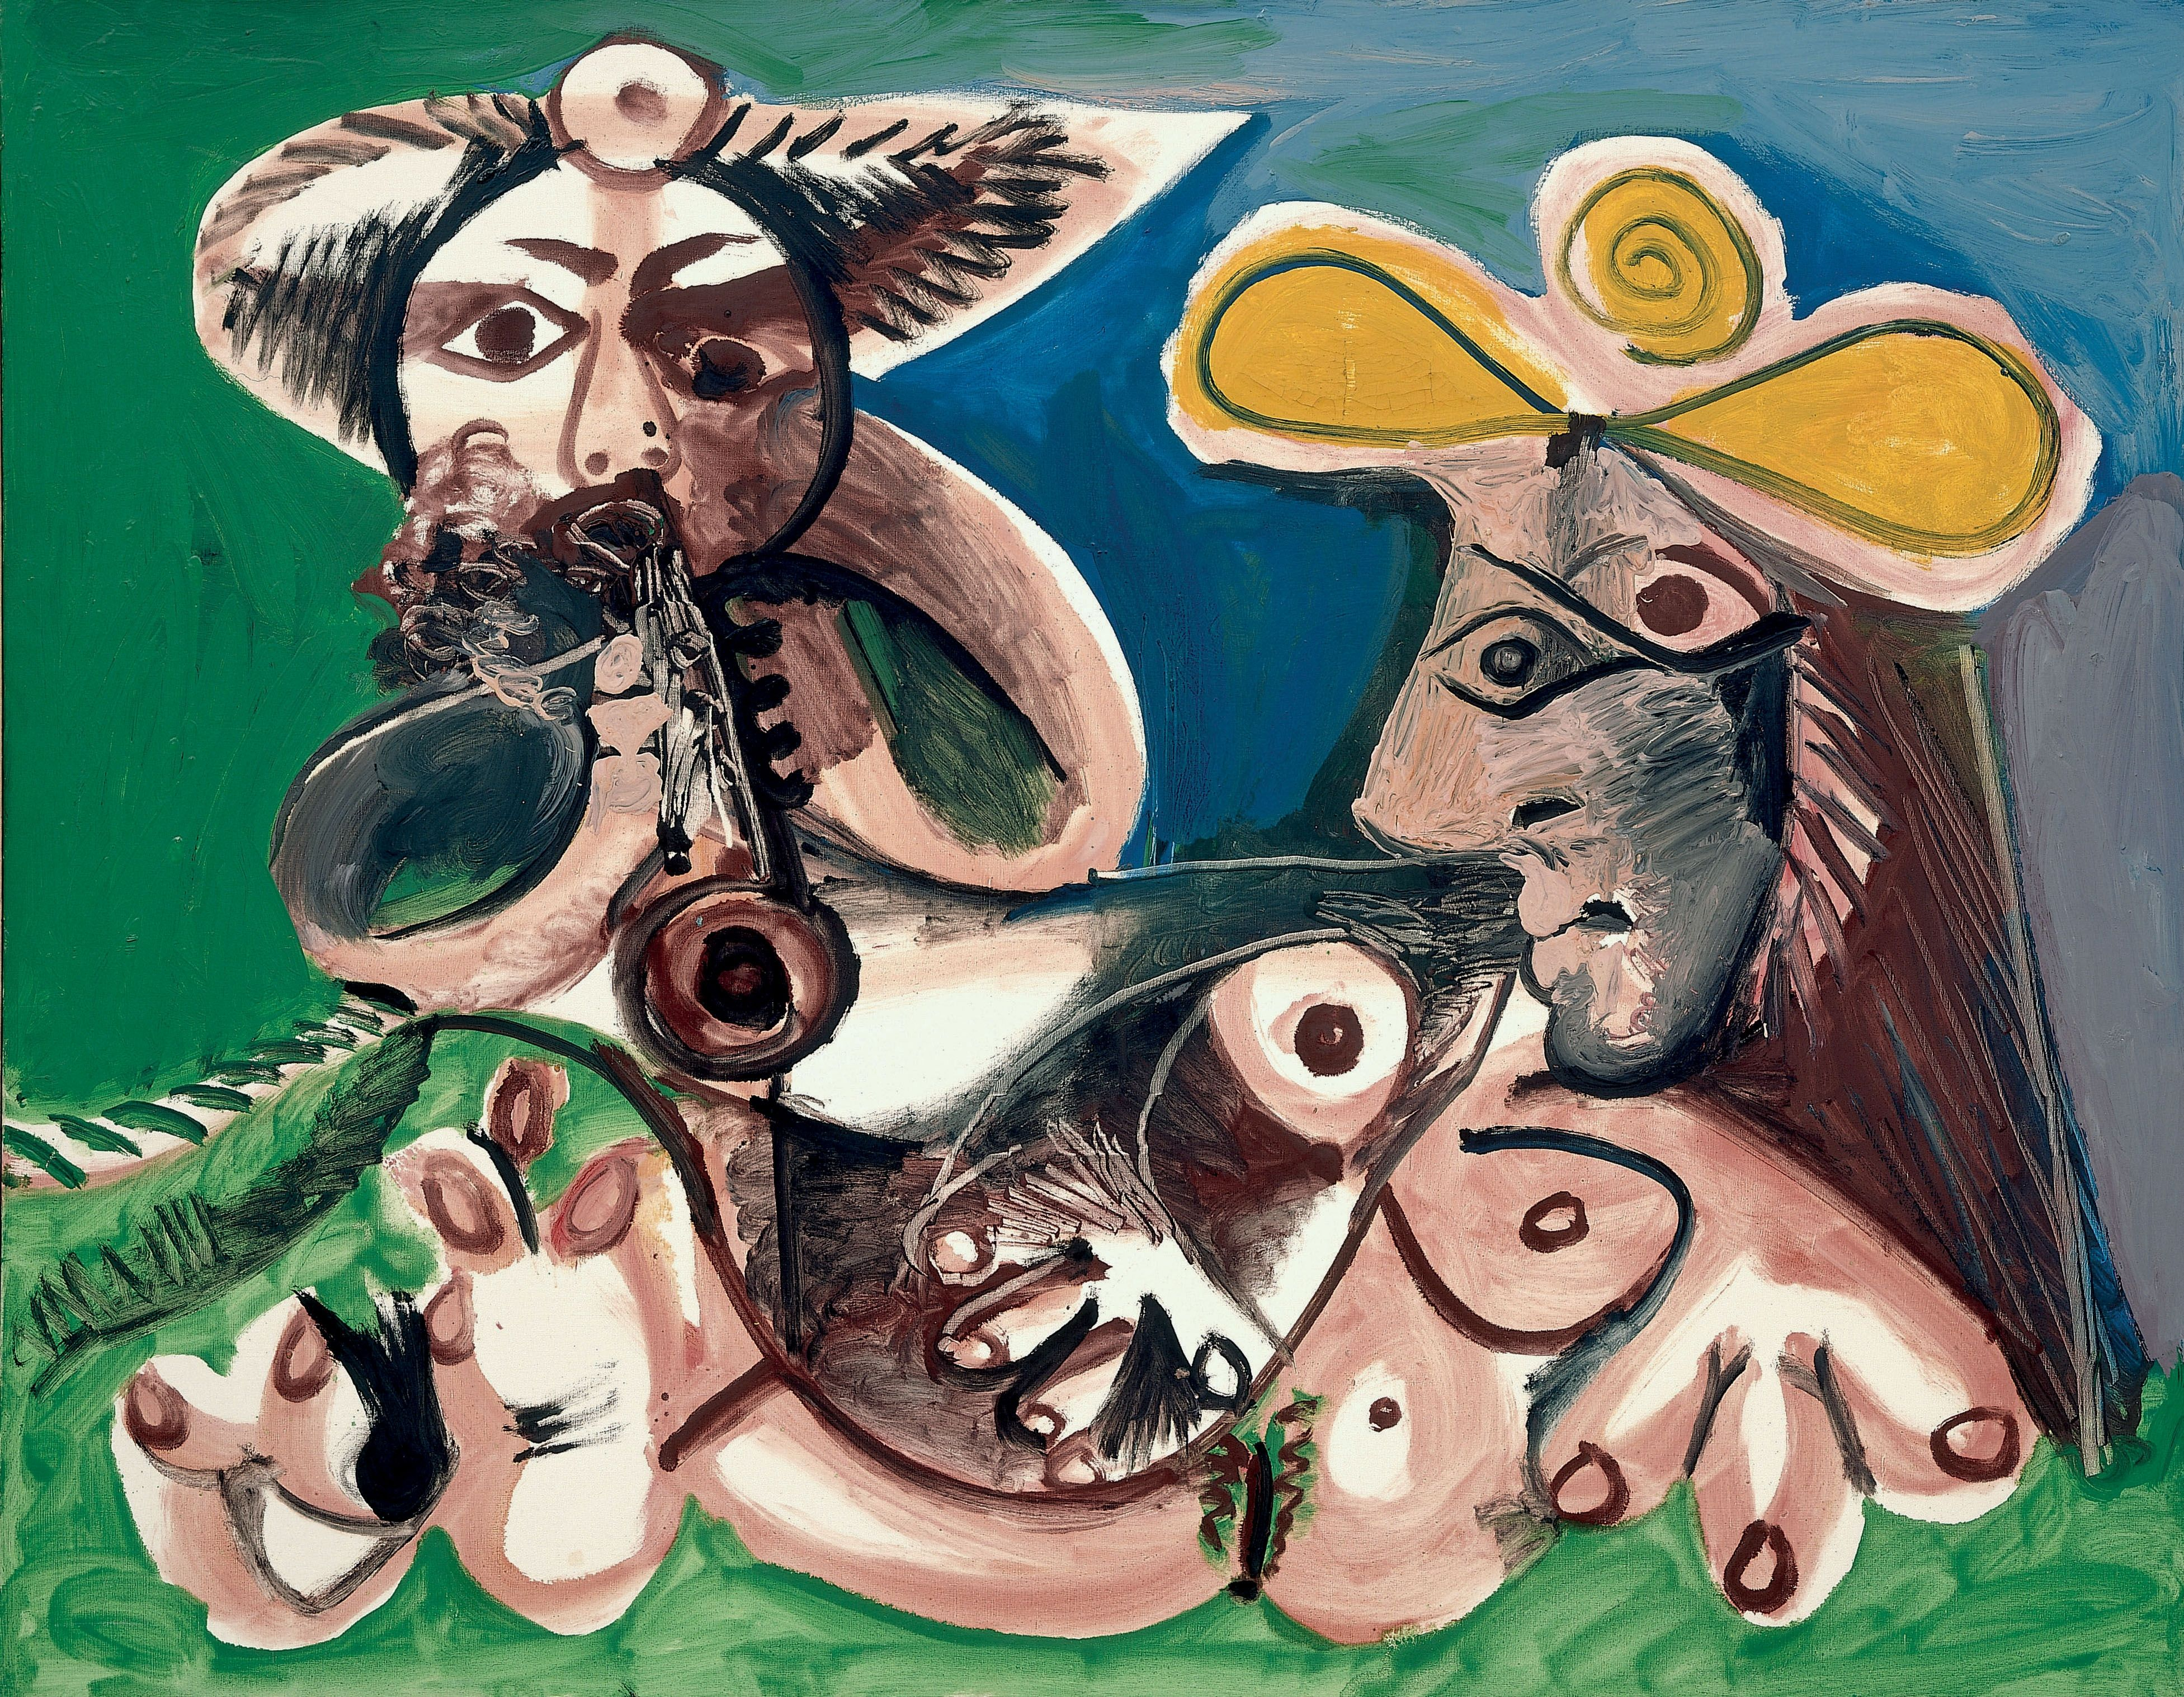 Pablo Picasso - Flute Player and Female Nude, 1970